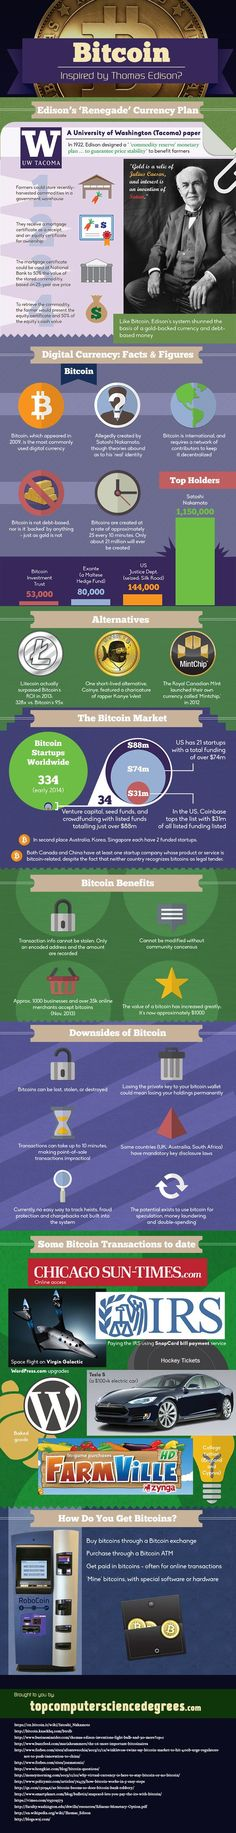 bitcoin11 The world of Bitcoins is brilliant and truly rewarding.